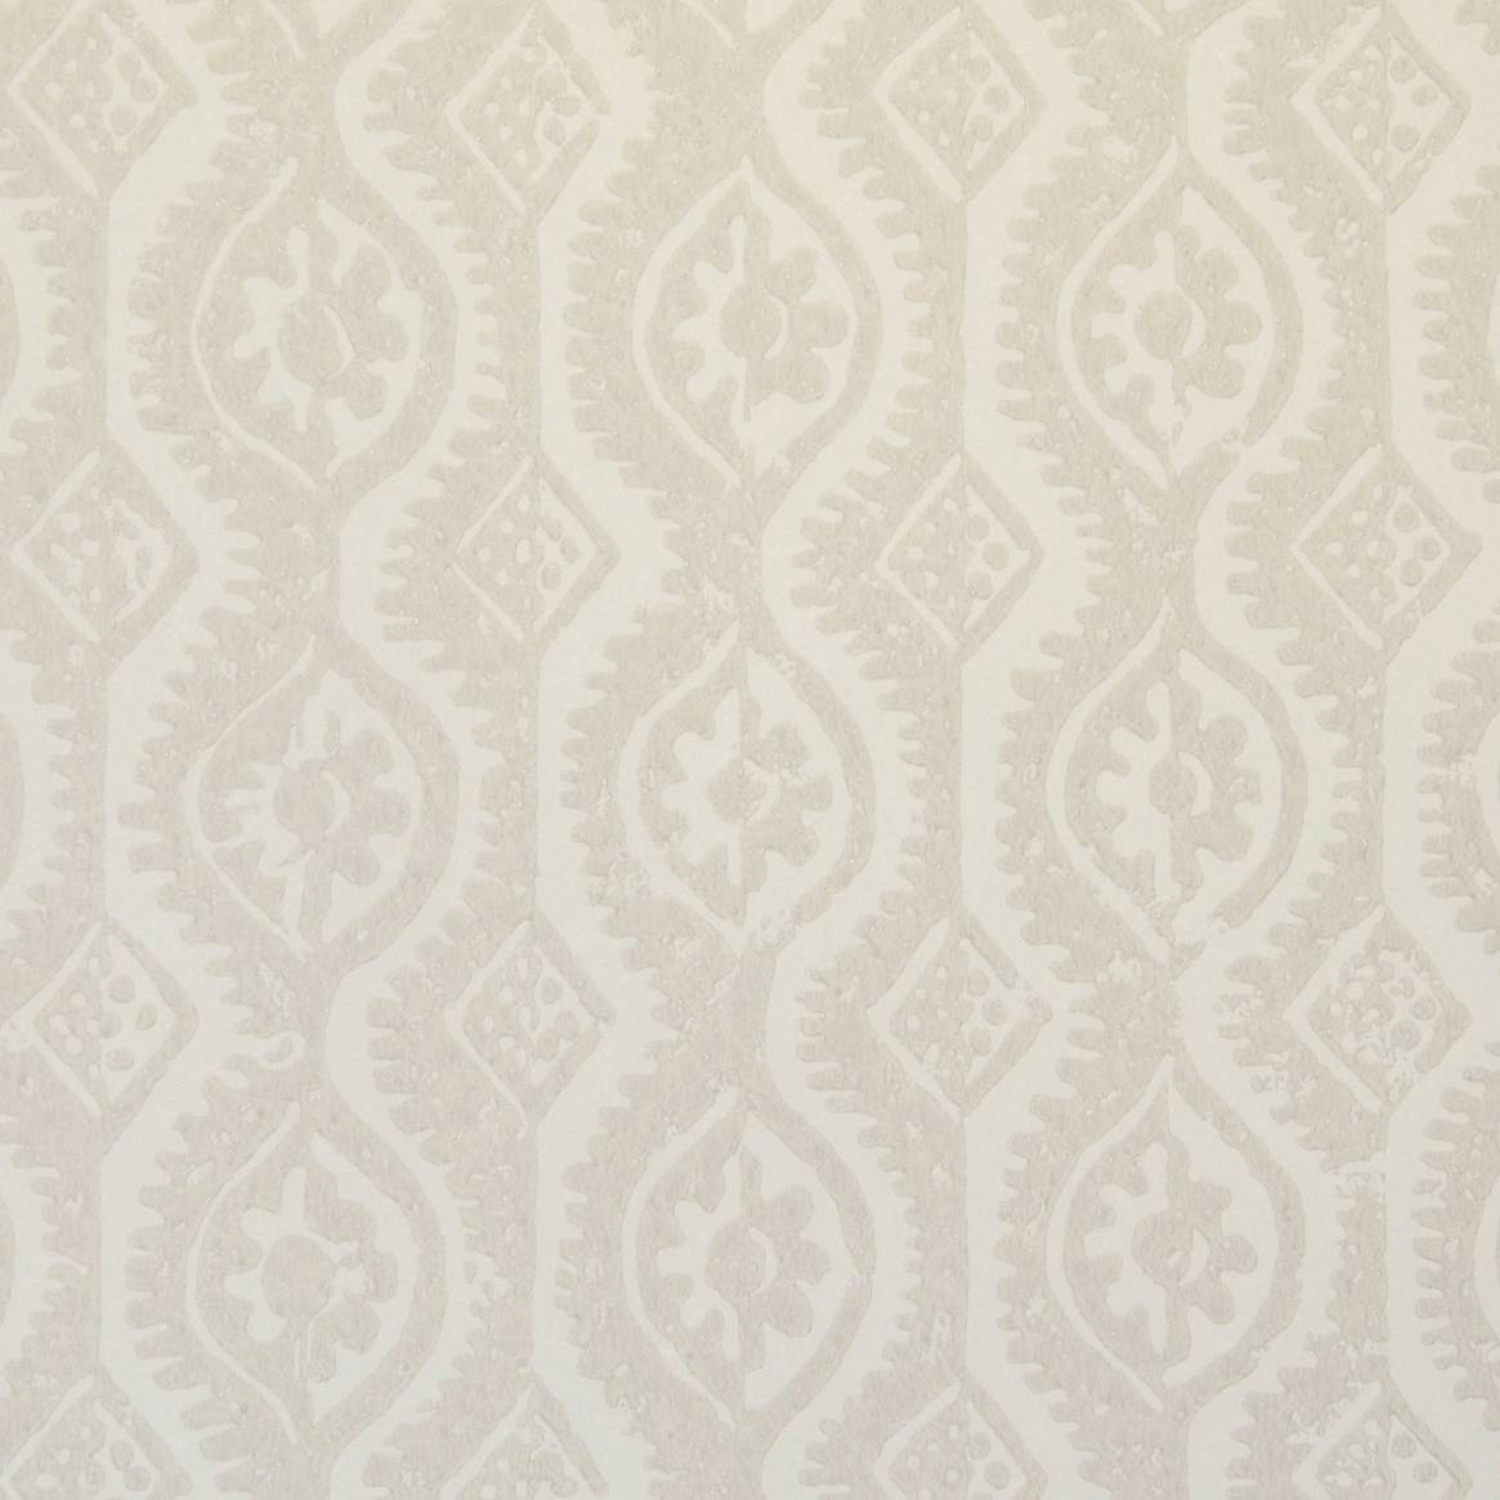 <p><strong>SMALL DAMASK</strong>beige 880-09<a href=/the-peggy-angus-collection/small-damask-beige-880-09>More →</a></p>